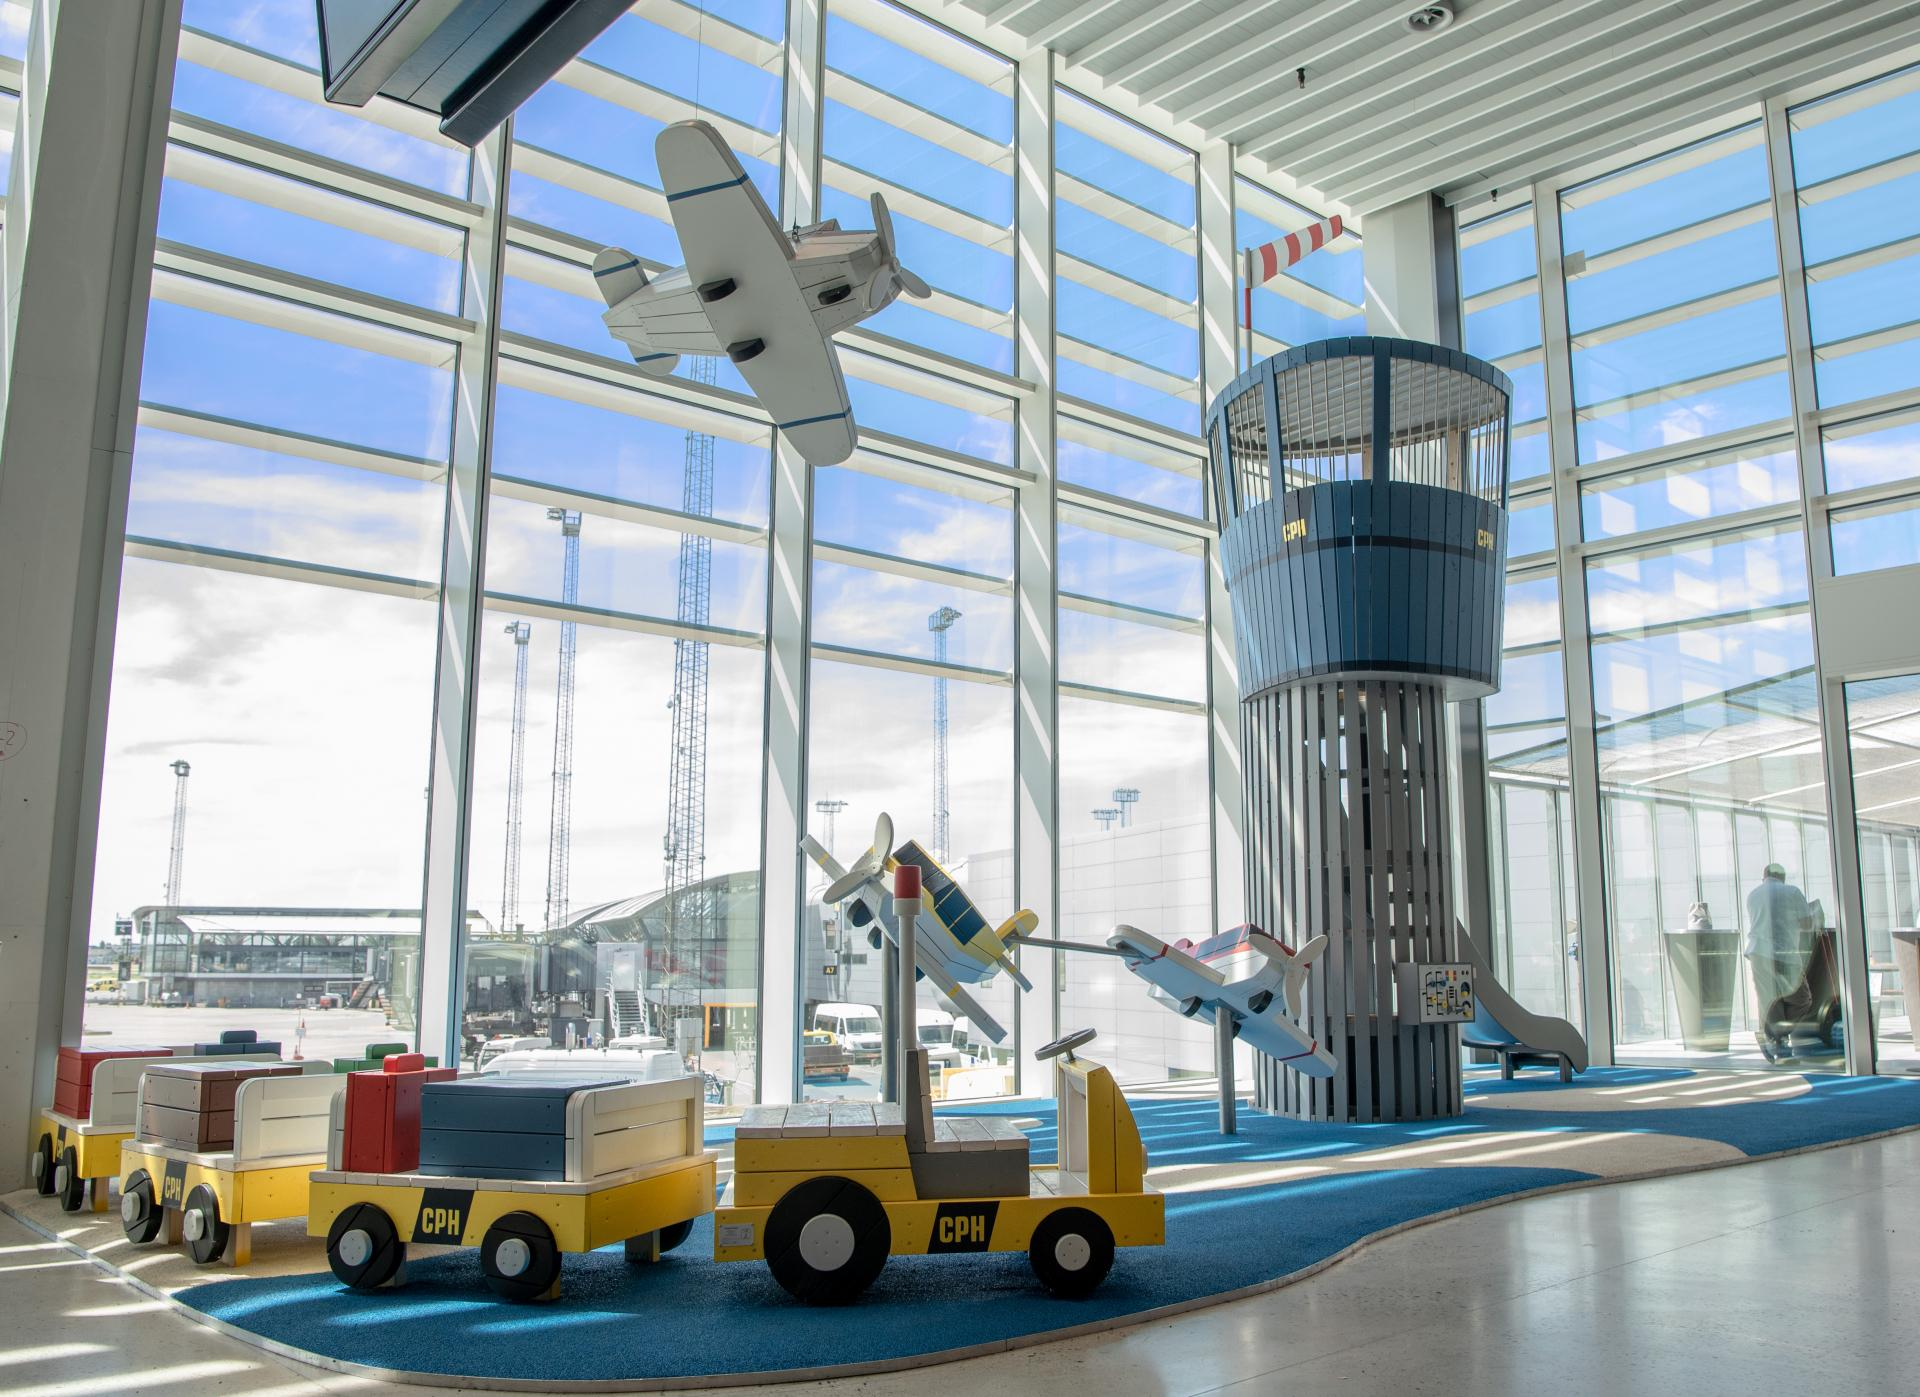 Copenhagen airport playground monstrum